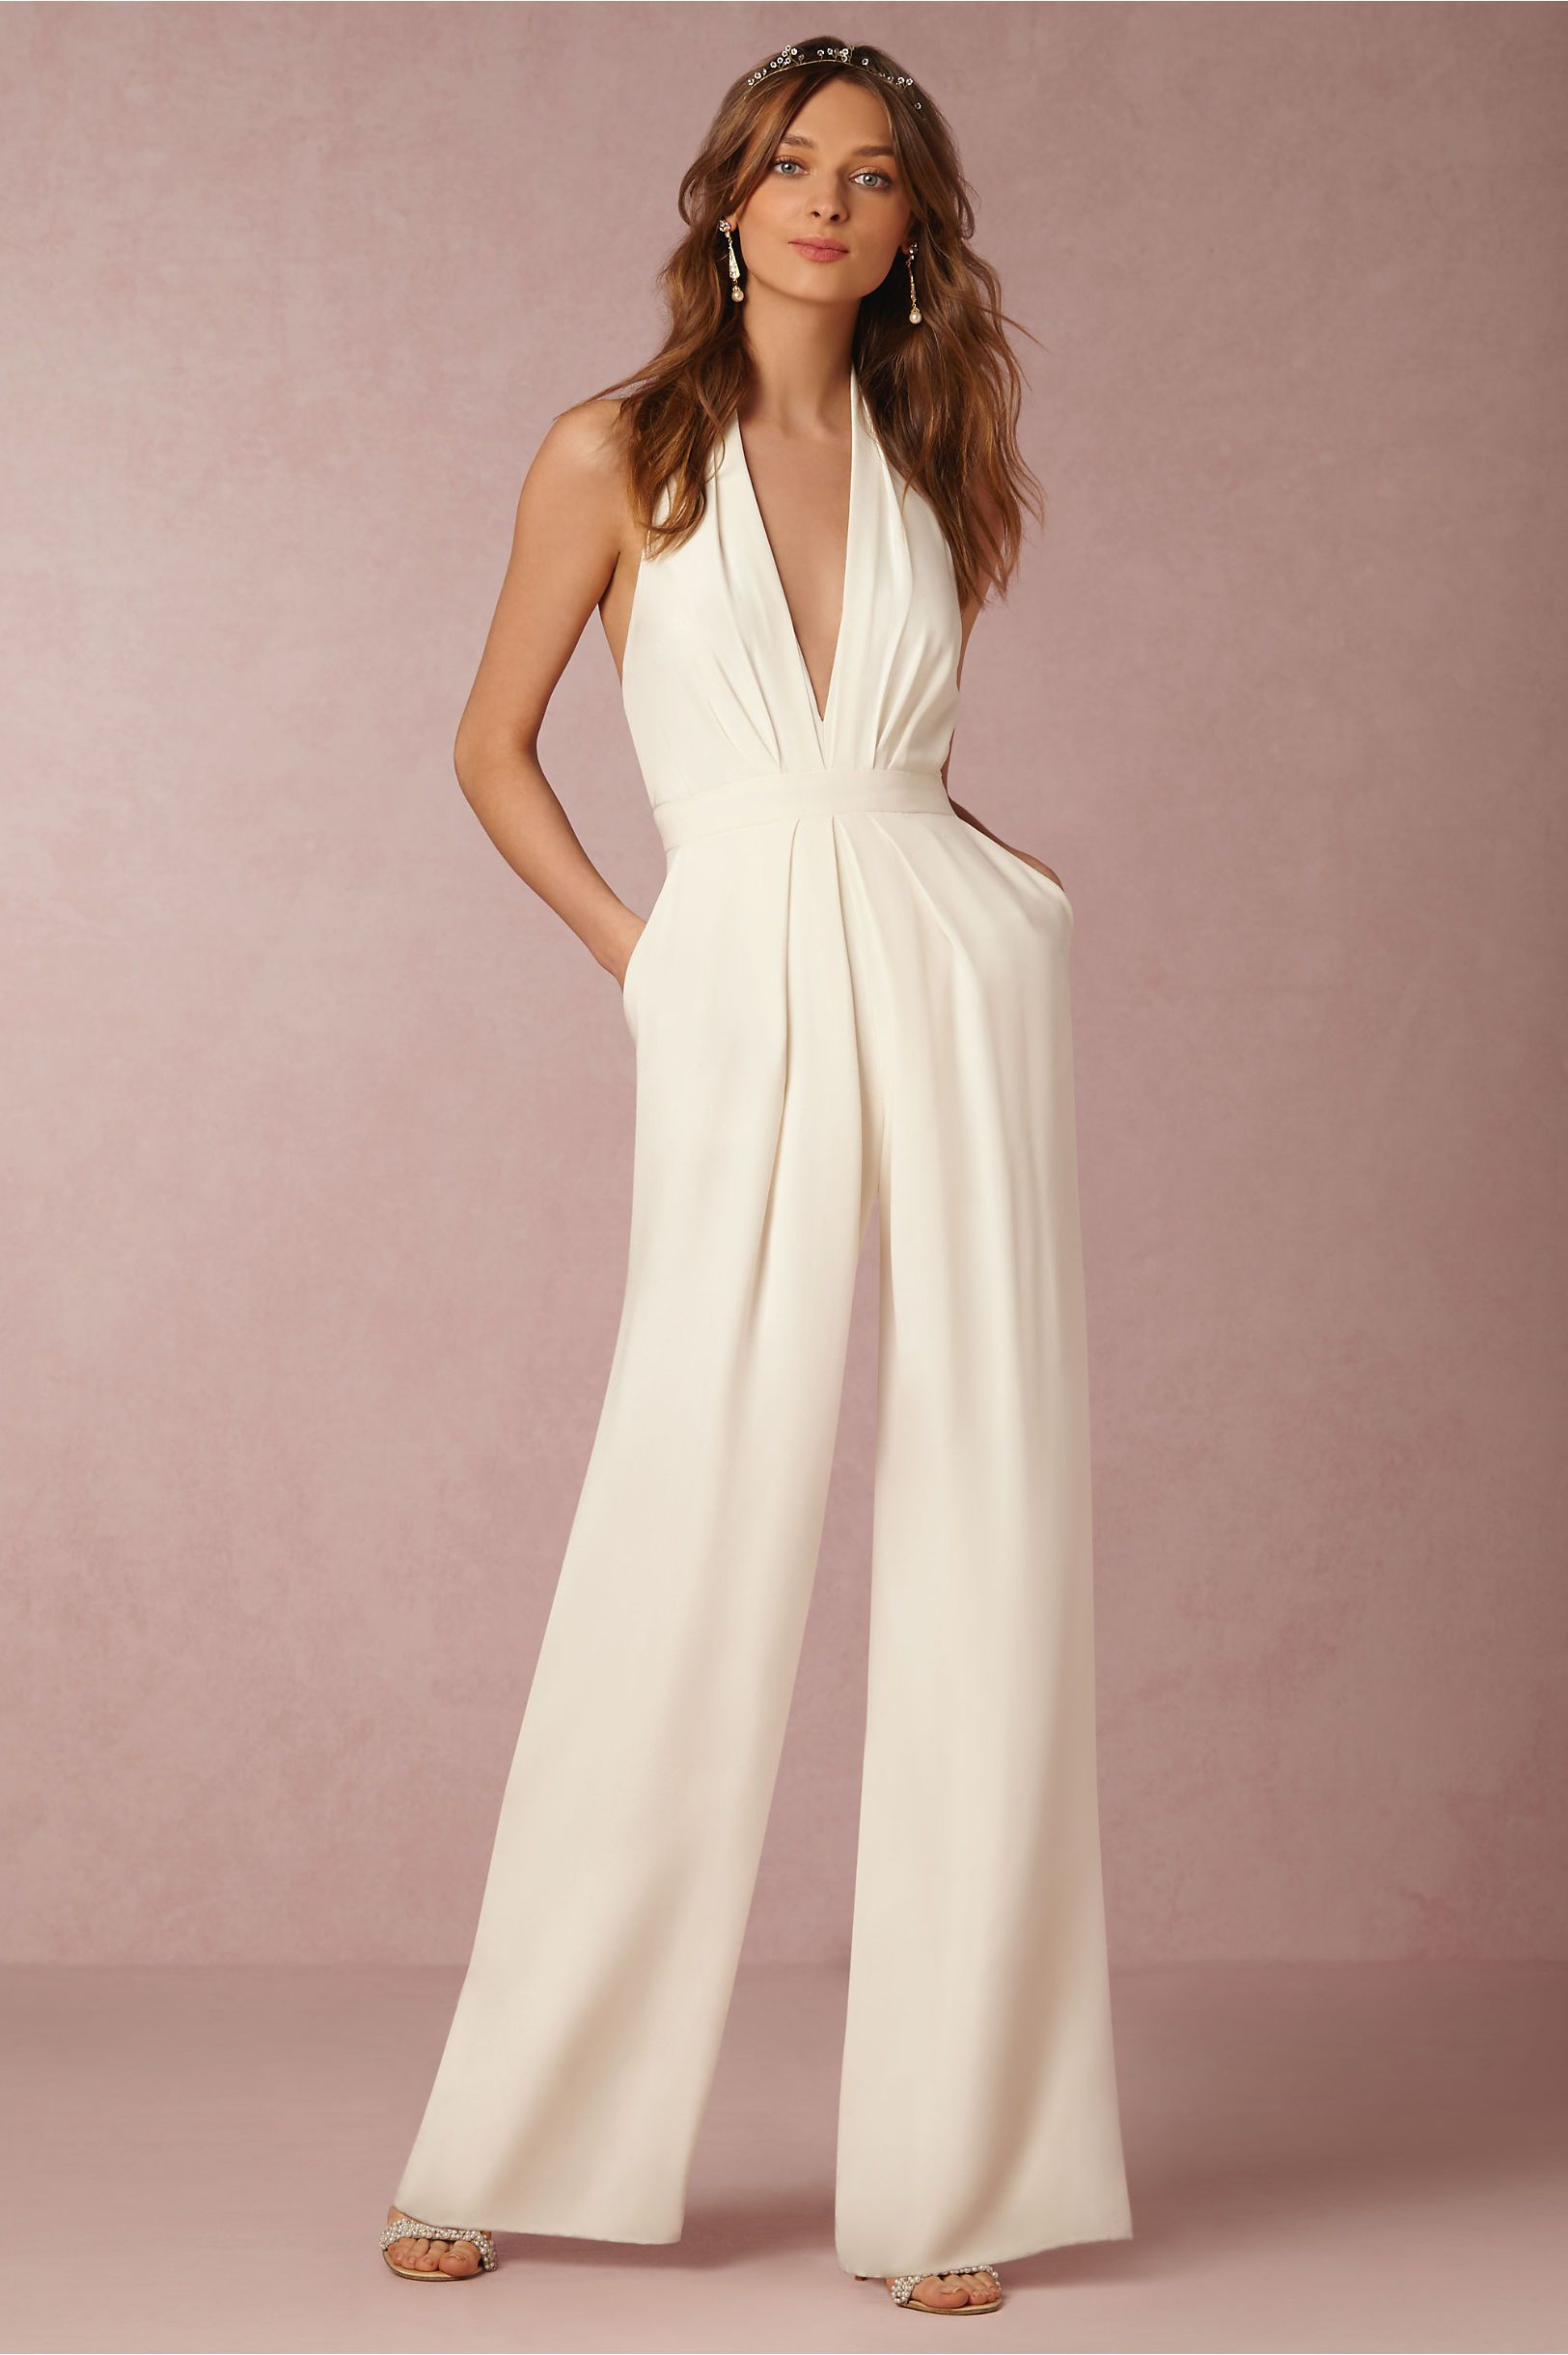 BHLDN Mara Jumpsuit in Dresses View All Dresses at BHLDN | D ...